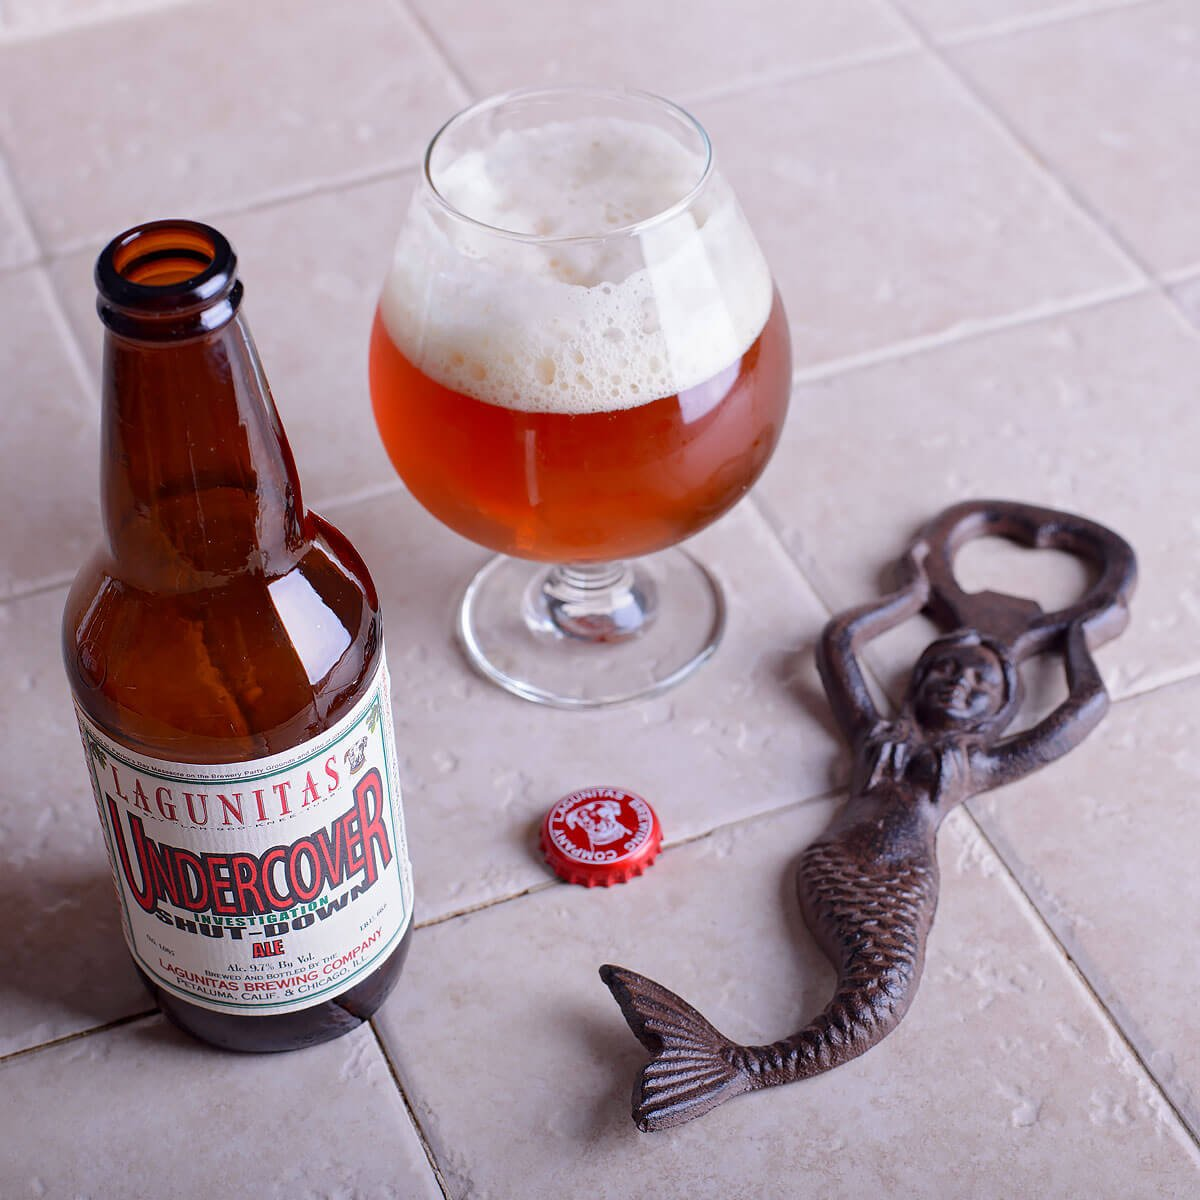 Undercover Investigation Shut-Down Ale, an American Strong Ale by Lagunitas Brewing Company